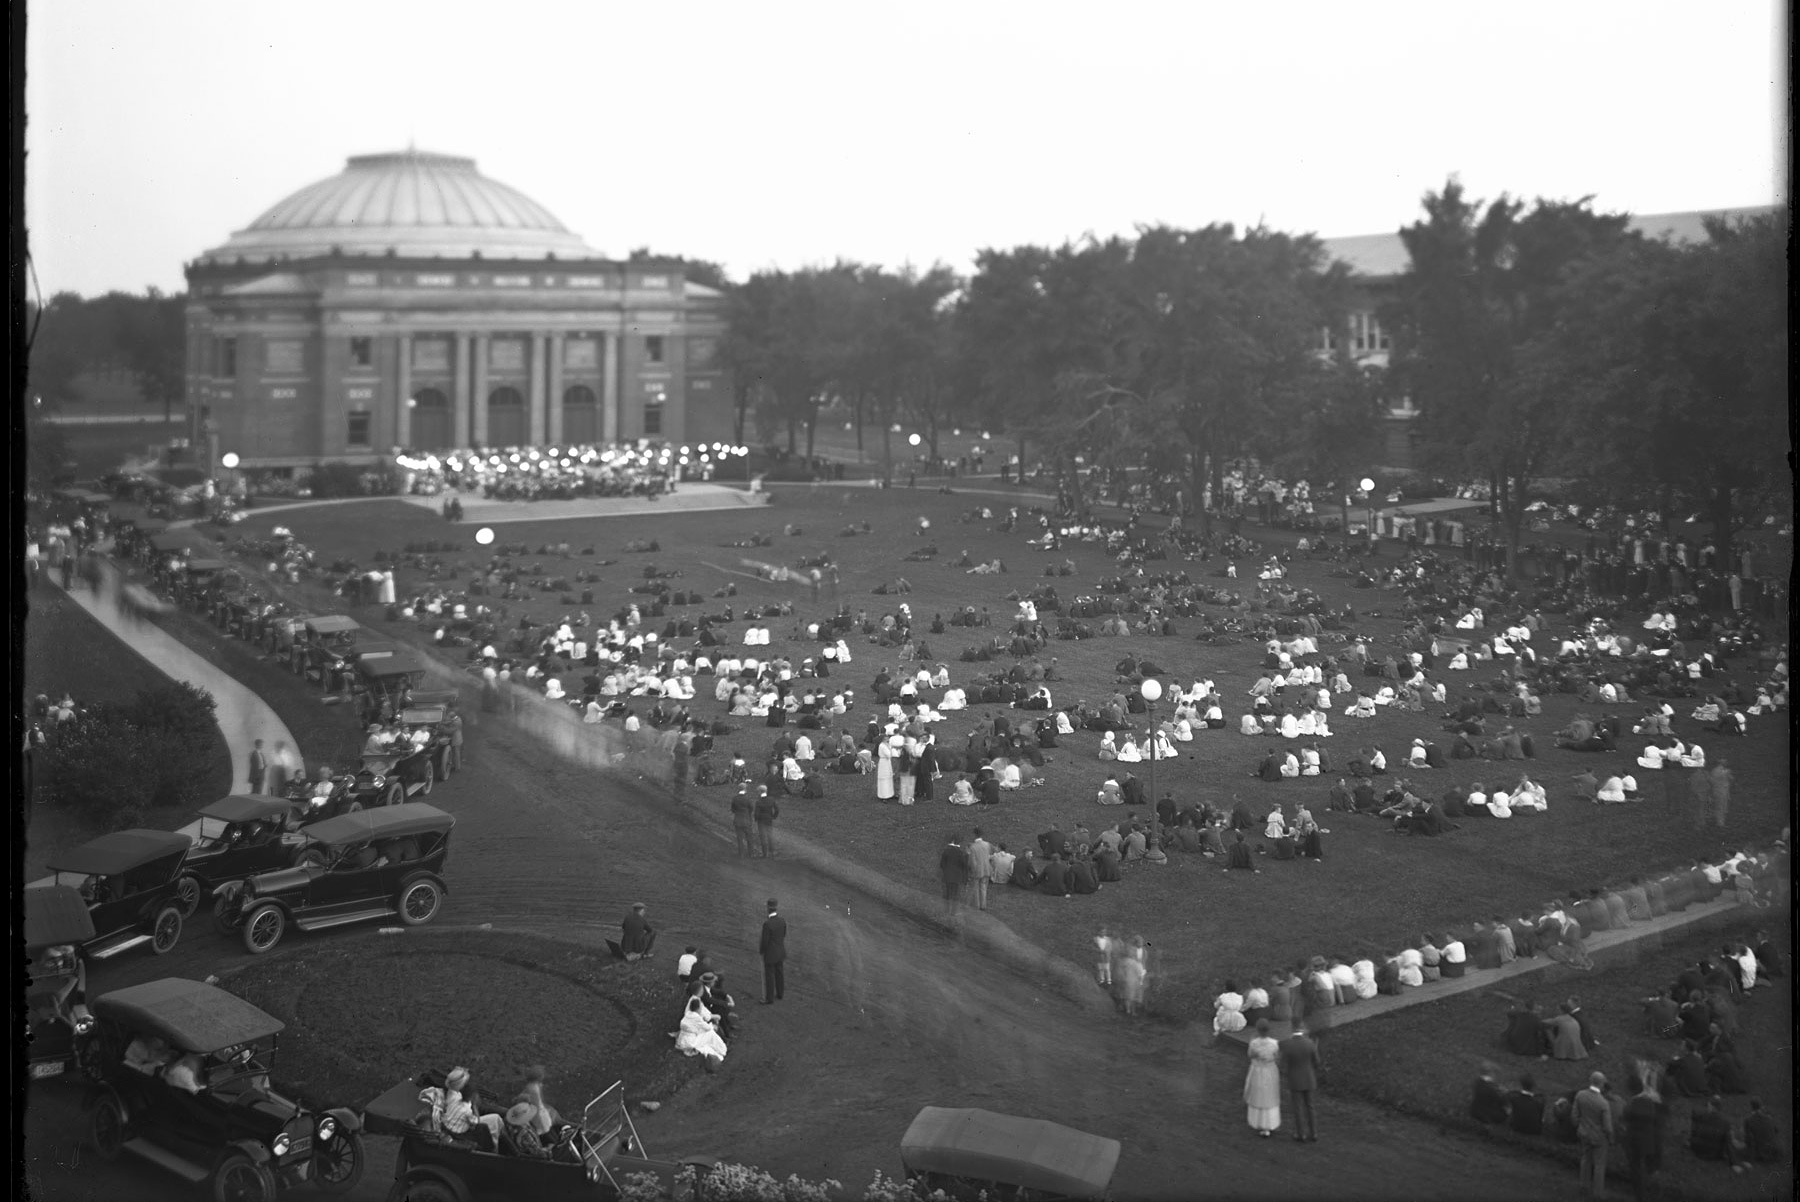 a band plays outside Foellinger Auditorium in the summer of 1916